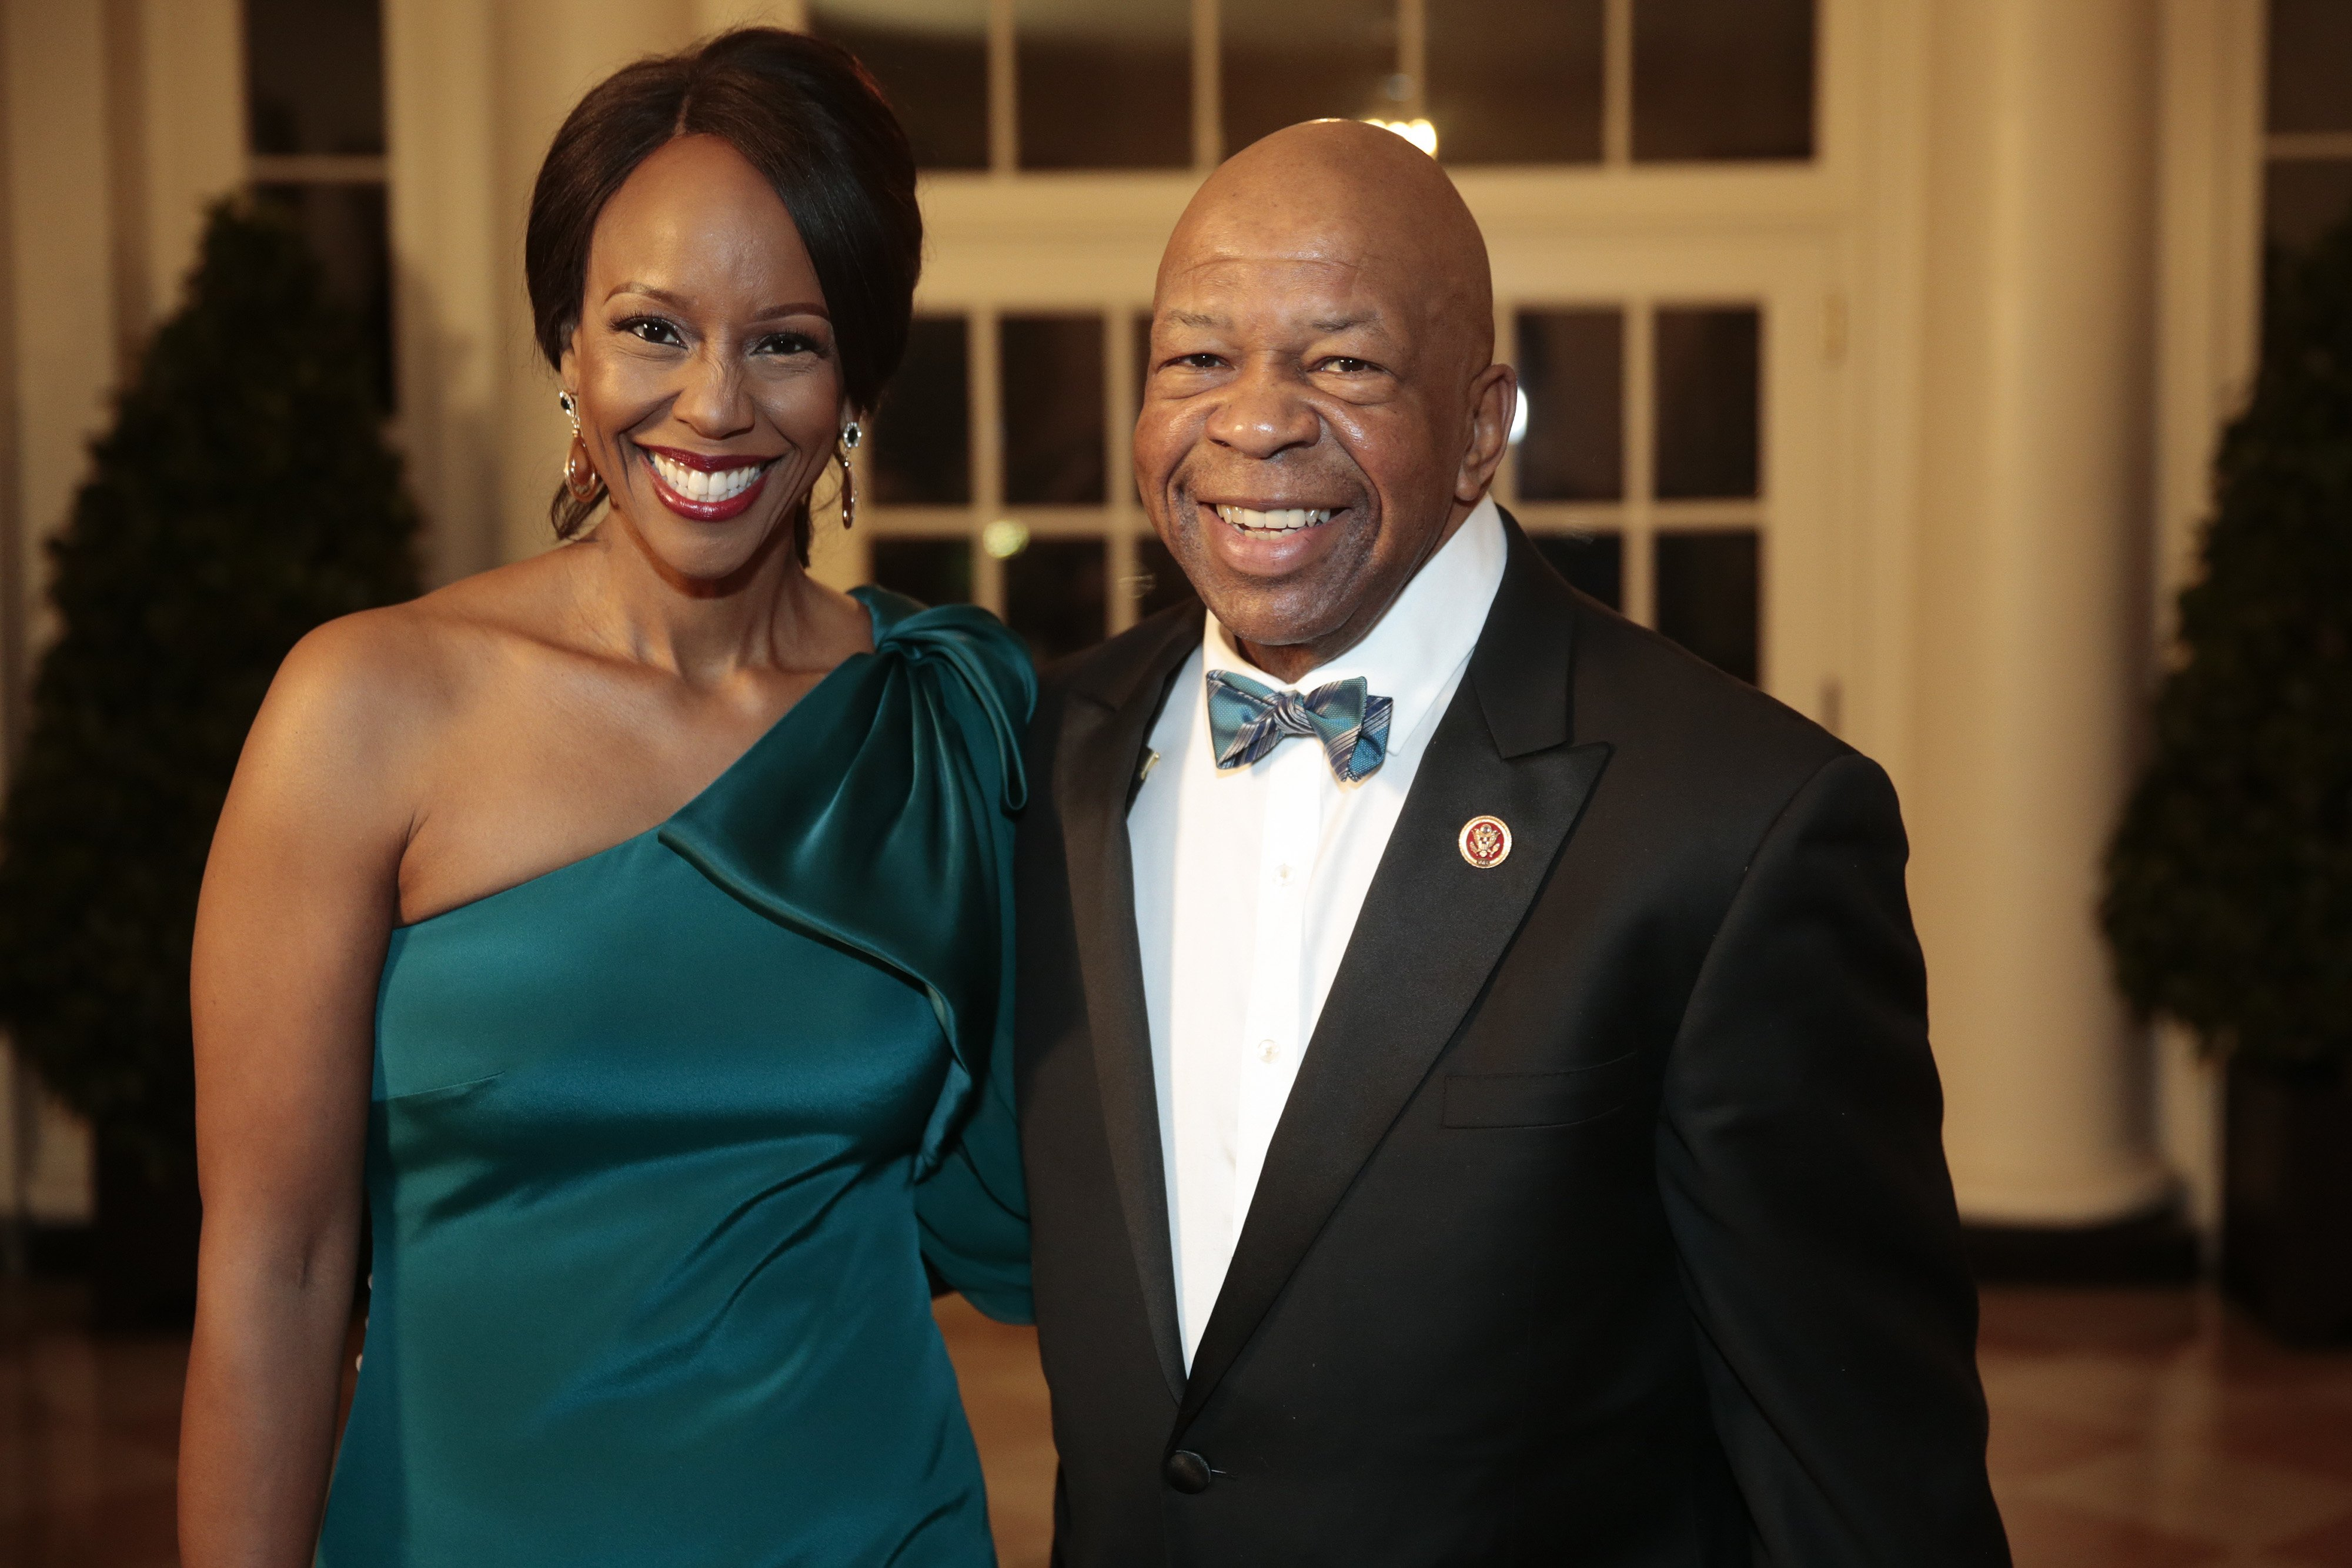 Rep. Elijah Cummings, a Democrat from Maryland, right, and Maya Rockeymoore Cummings arrive to a state dinner hosted by U.S. President Barack Obama and U.S. first lady Michelle Obama in honor of French President Francois Hollande at the White House on Feb. 11, 2014 in Washington, D.C. (Photo by Andrew Harrer-Pool/Getty Images)